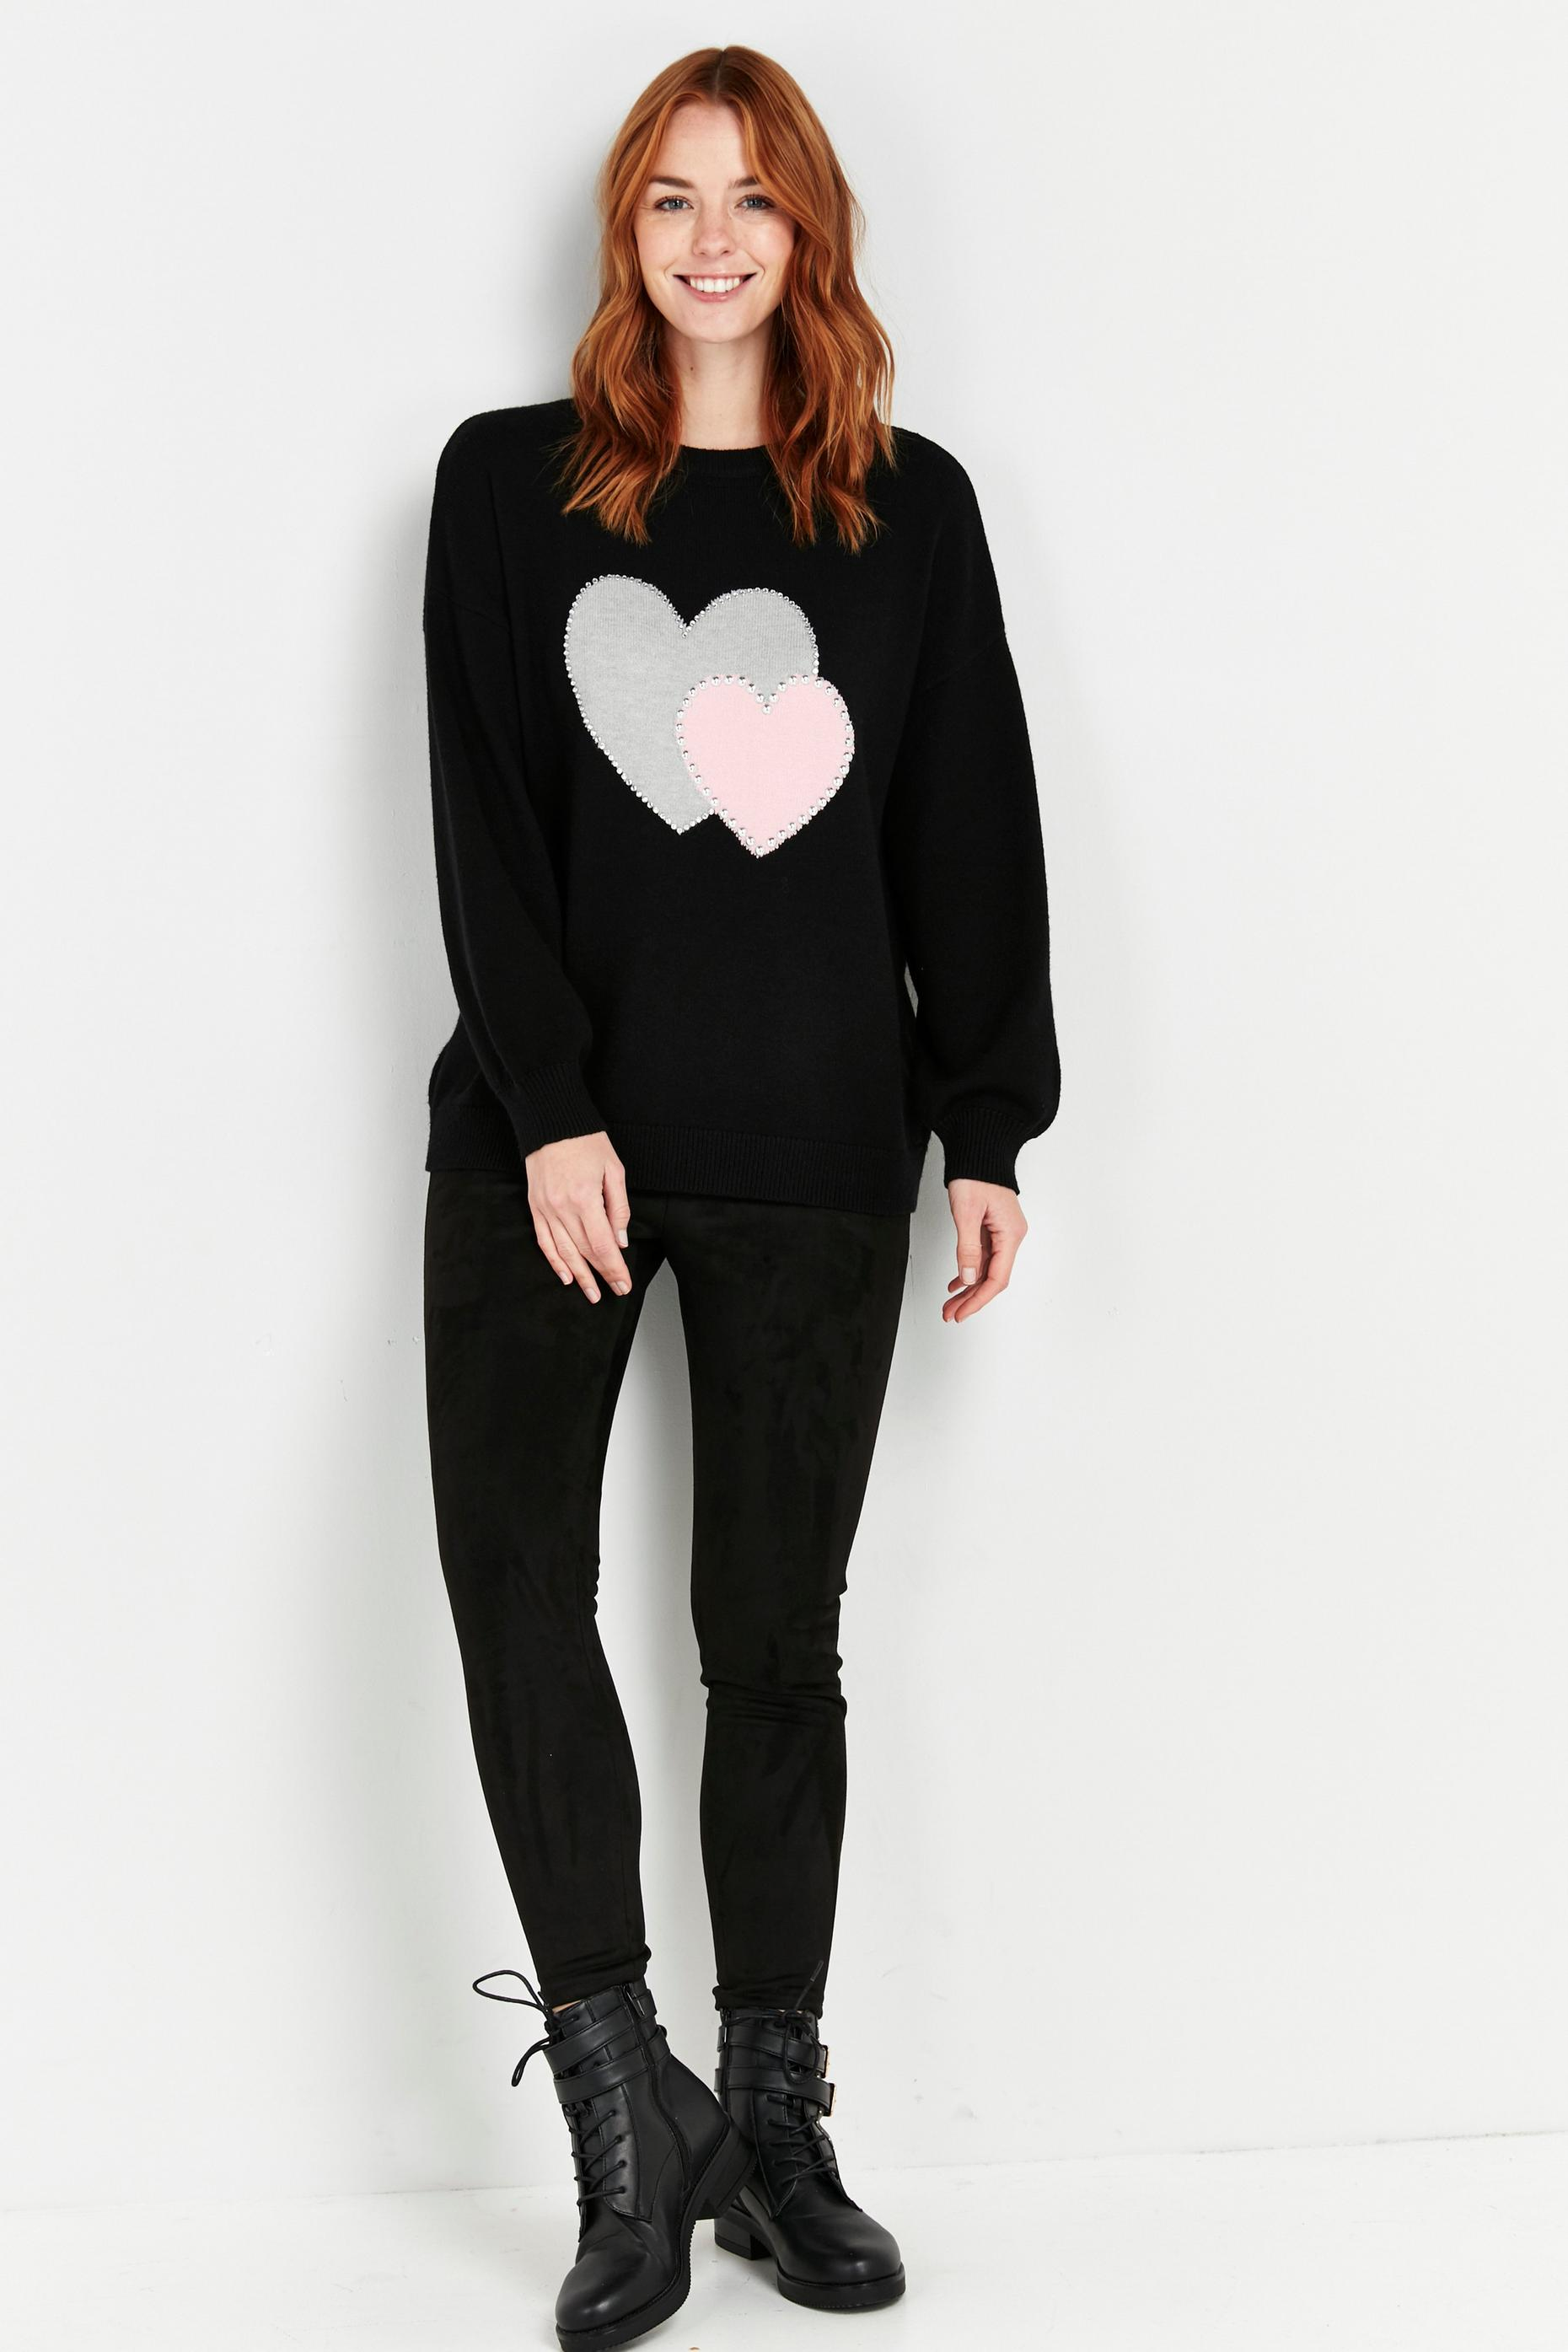 PETITE Black Double Heart Print Jumper